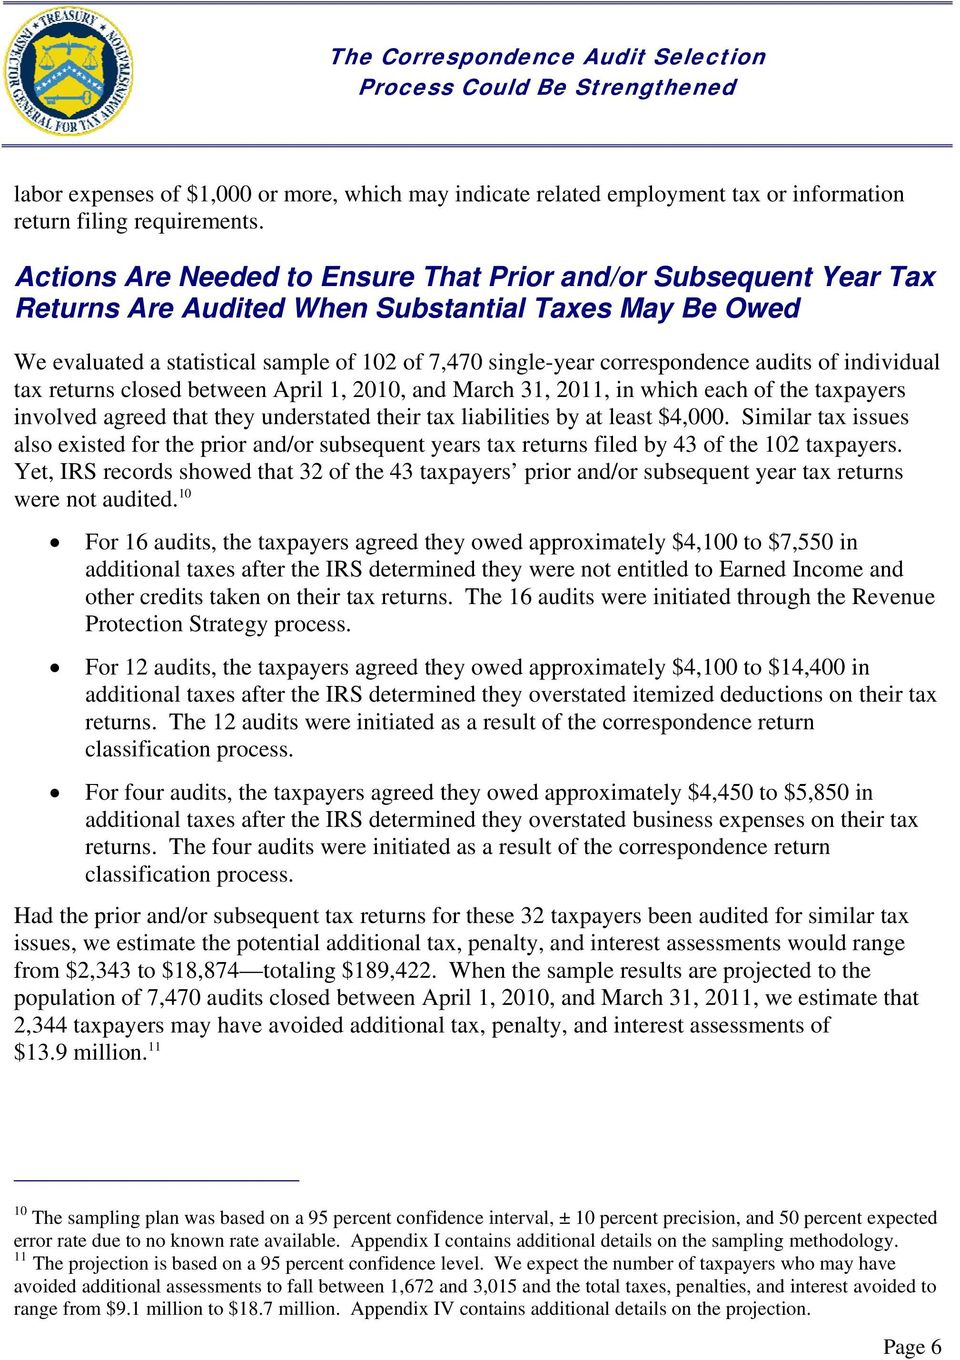 audits of individual tax returns closed between April 1, 2010, and March 31, 2011, in which each of the taxpayers involved agreed that they understated their tax liabilities by at least $4,000.